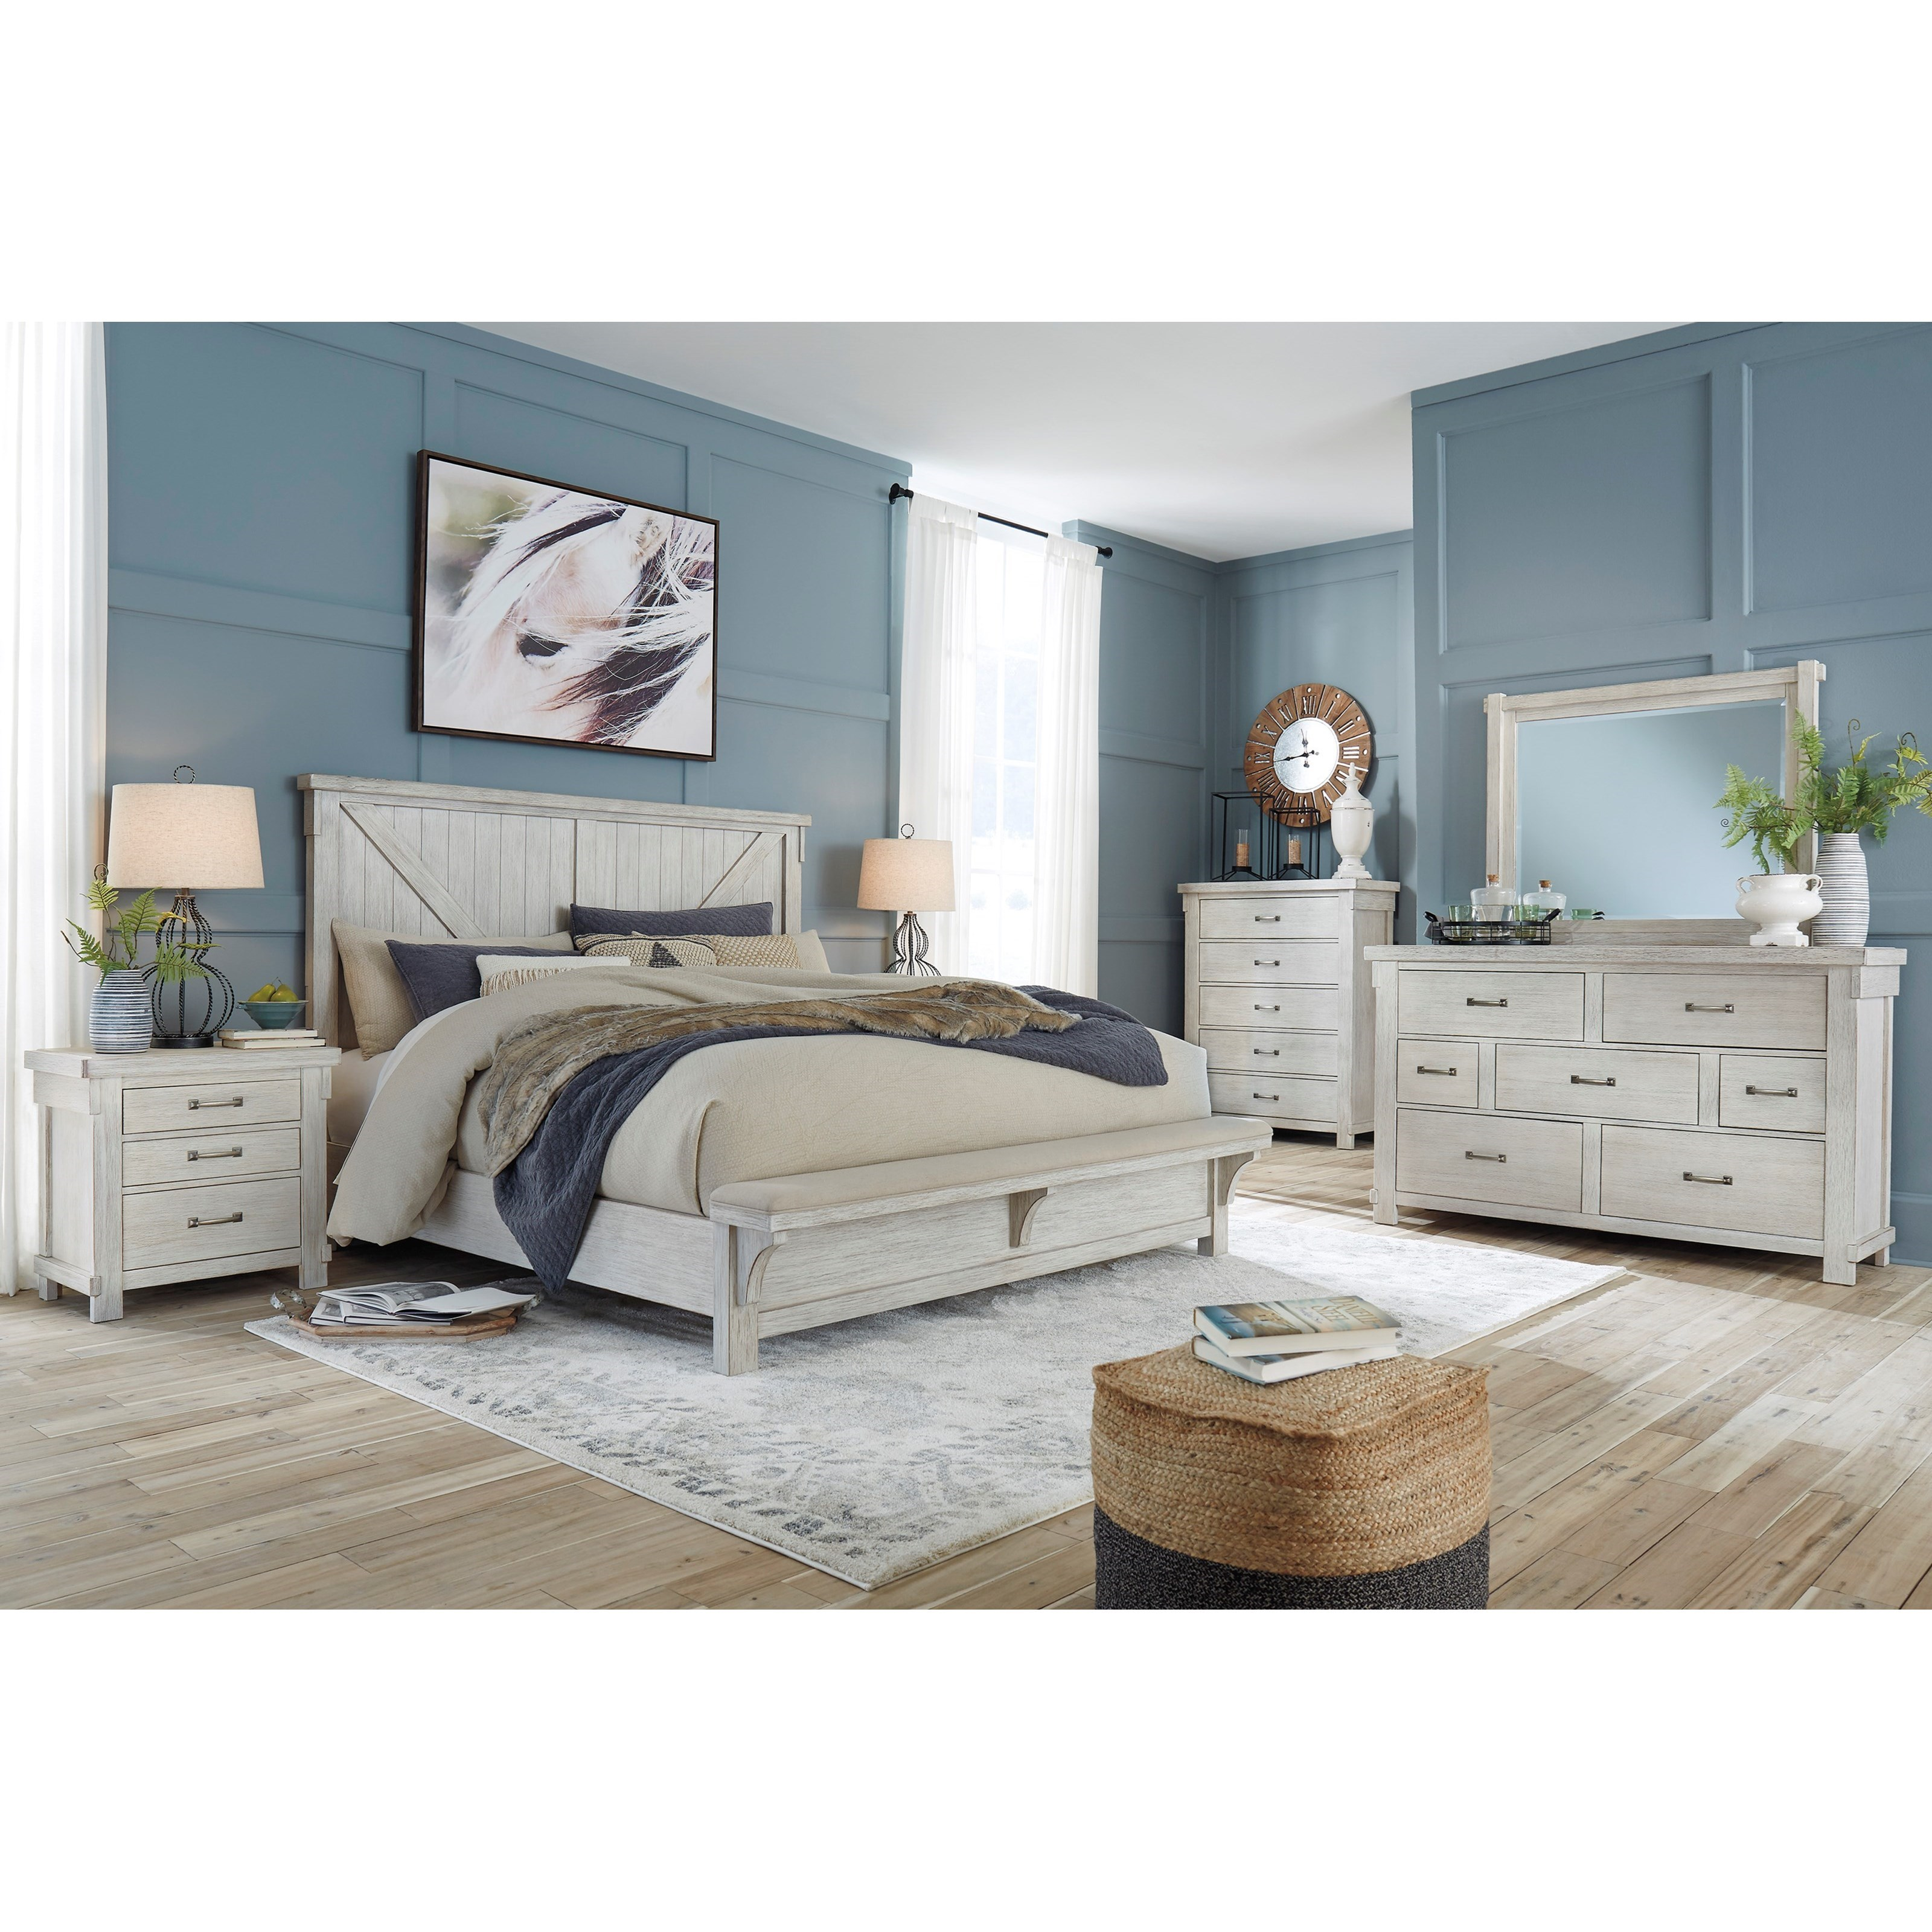 Brashland King Bedroom Group by Signature Design by Ashley at Beck's Furniture